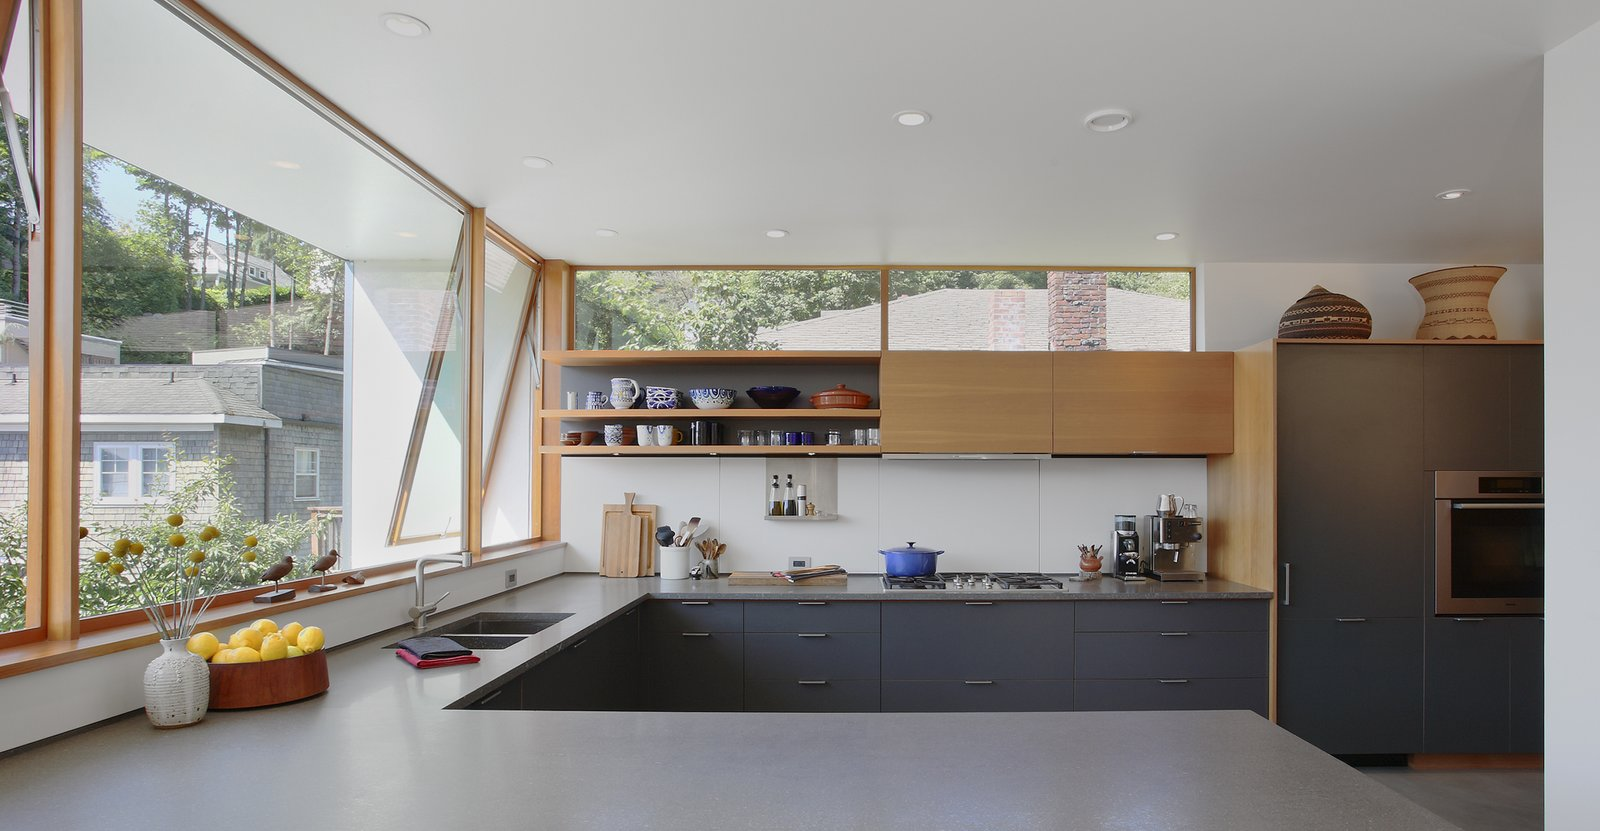 In the kitchen, a high western window carries the eye past neighboring rooftops to the lush hillside beyond. A wall also extends out to block sight of a neighboring deck. The architects paired custom shelving with slate-gray cabinets by Henrybuilt, cool Basaltina countertops, and white Corian backsplash. The faucet is by Cifial.